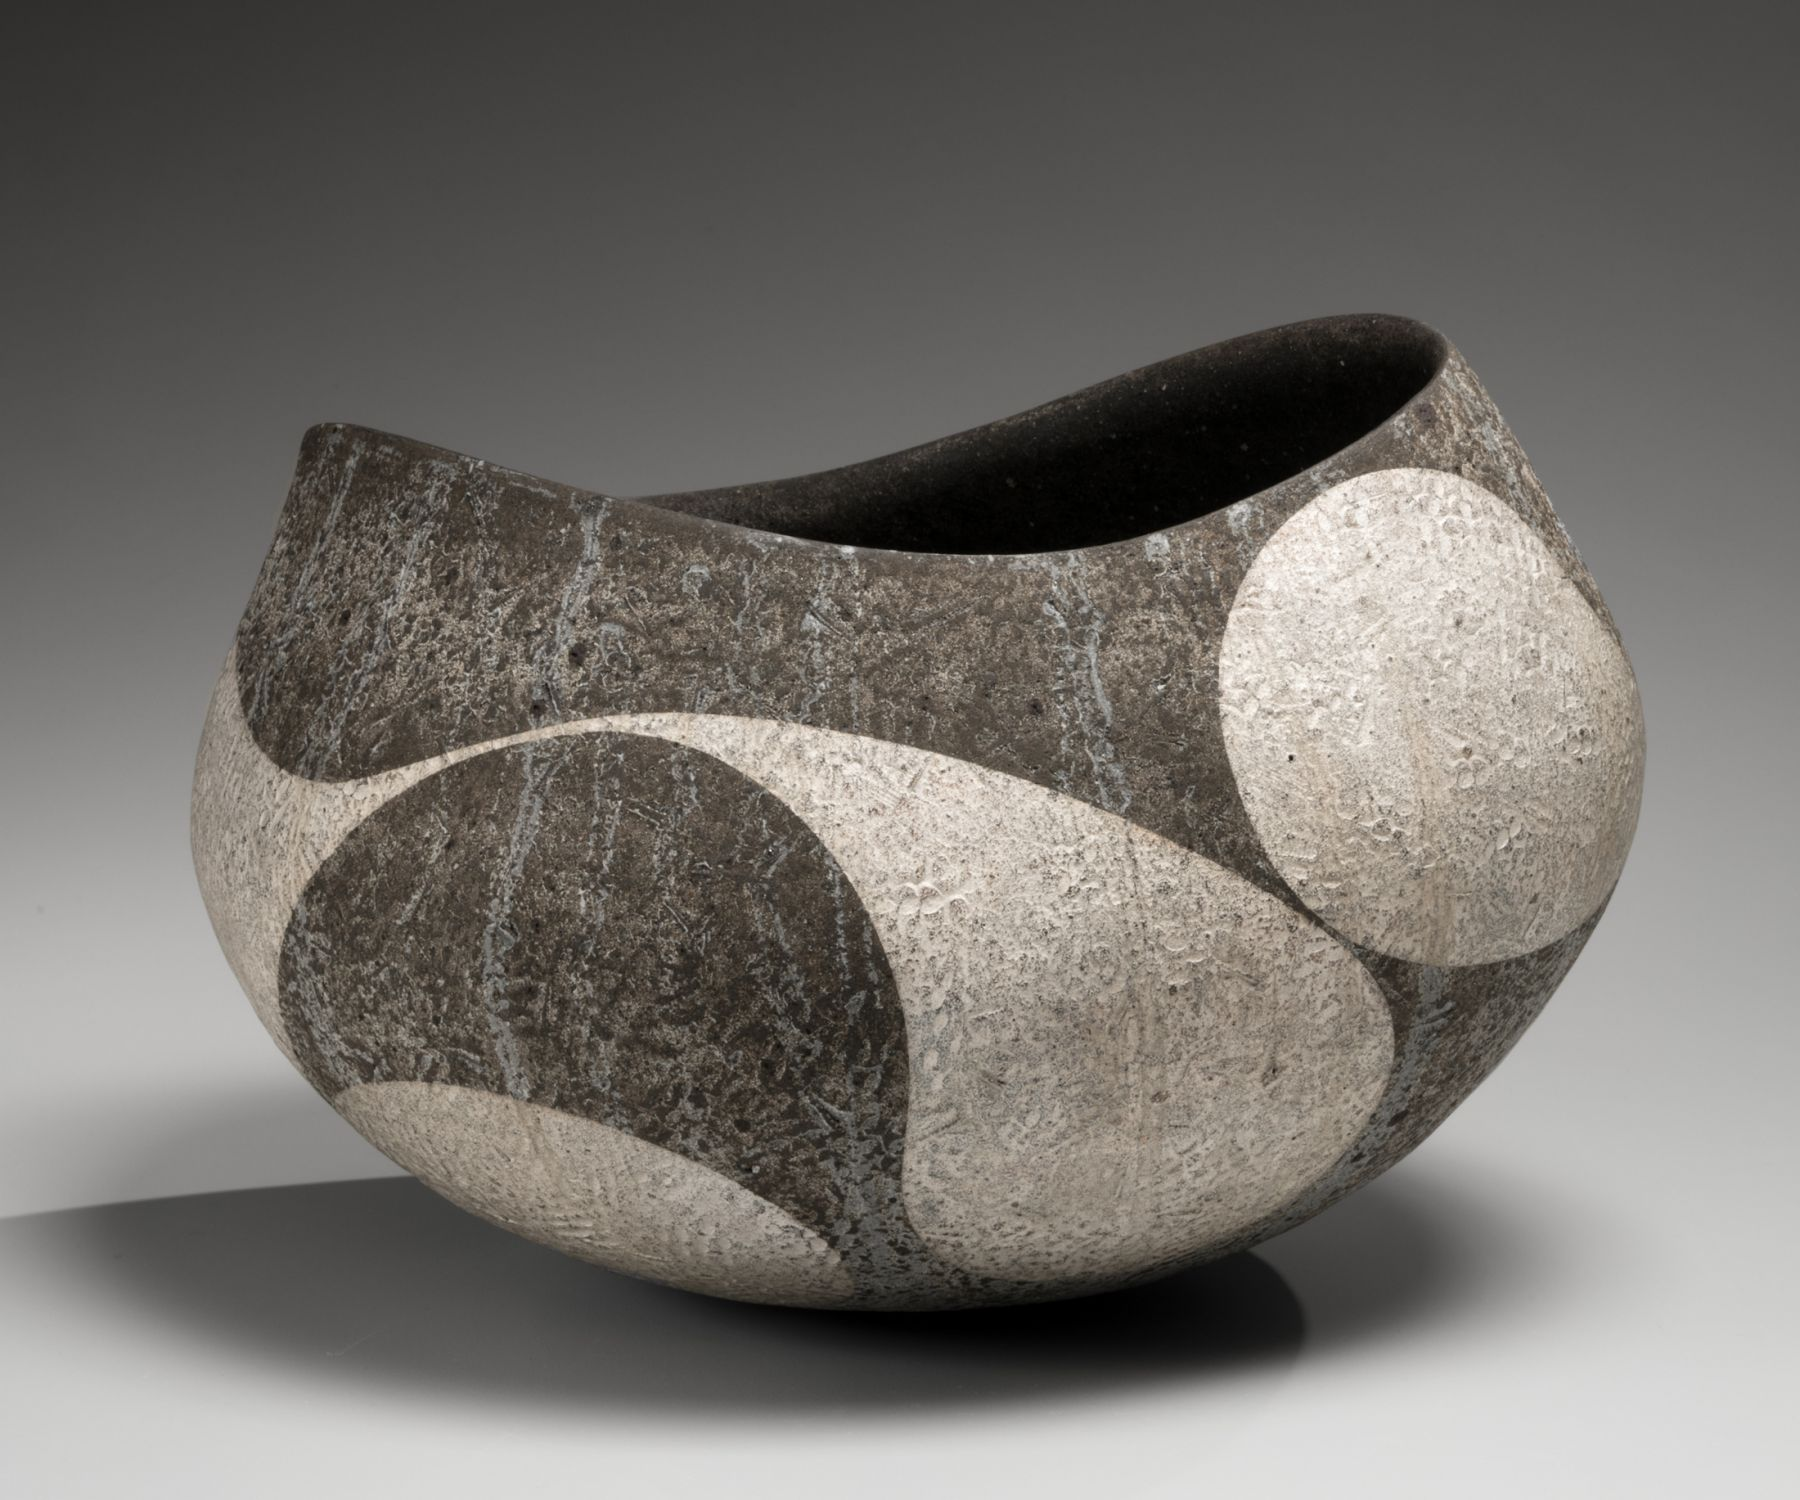 Iguchi Daisuke (b. 1975), Dark blackish-brown rounded vessel with wide open mouth and curvilinear patterning in silver slip